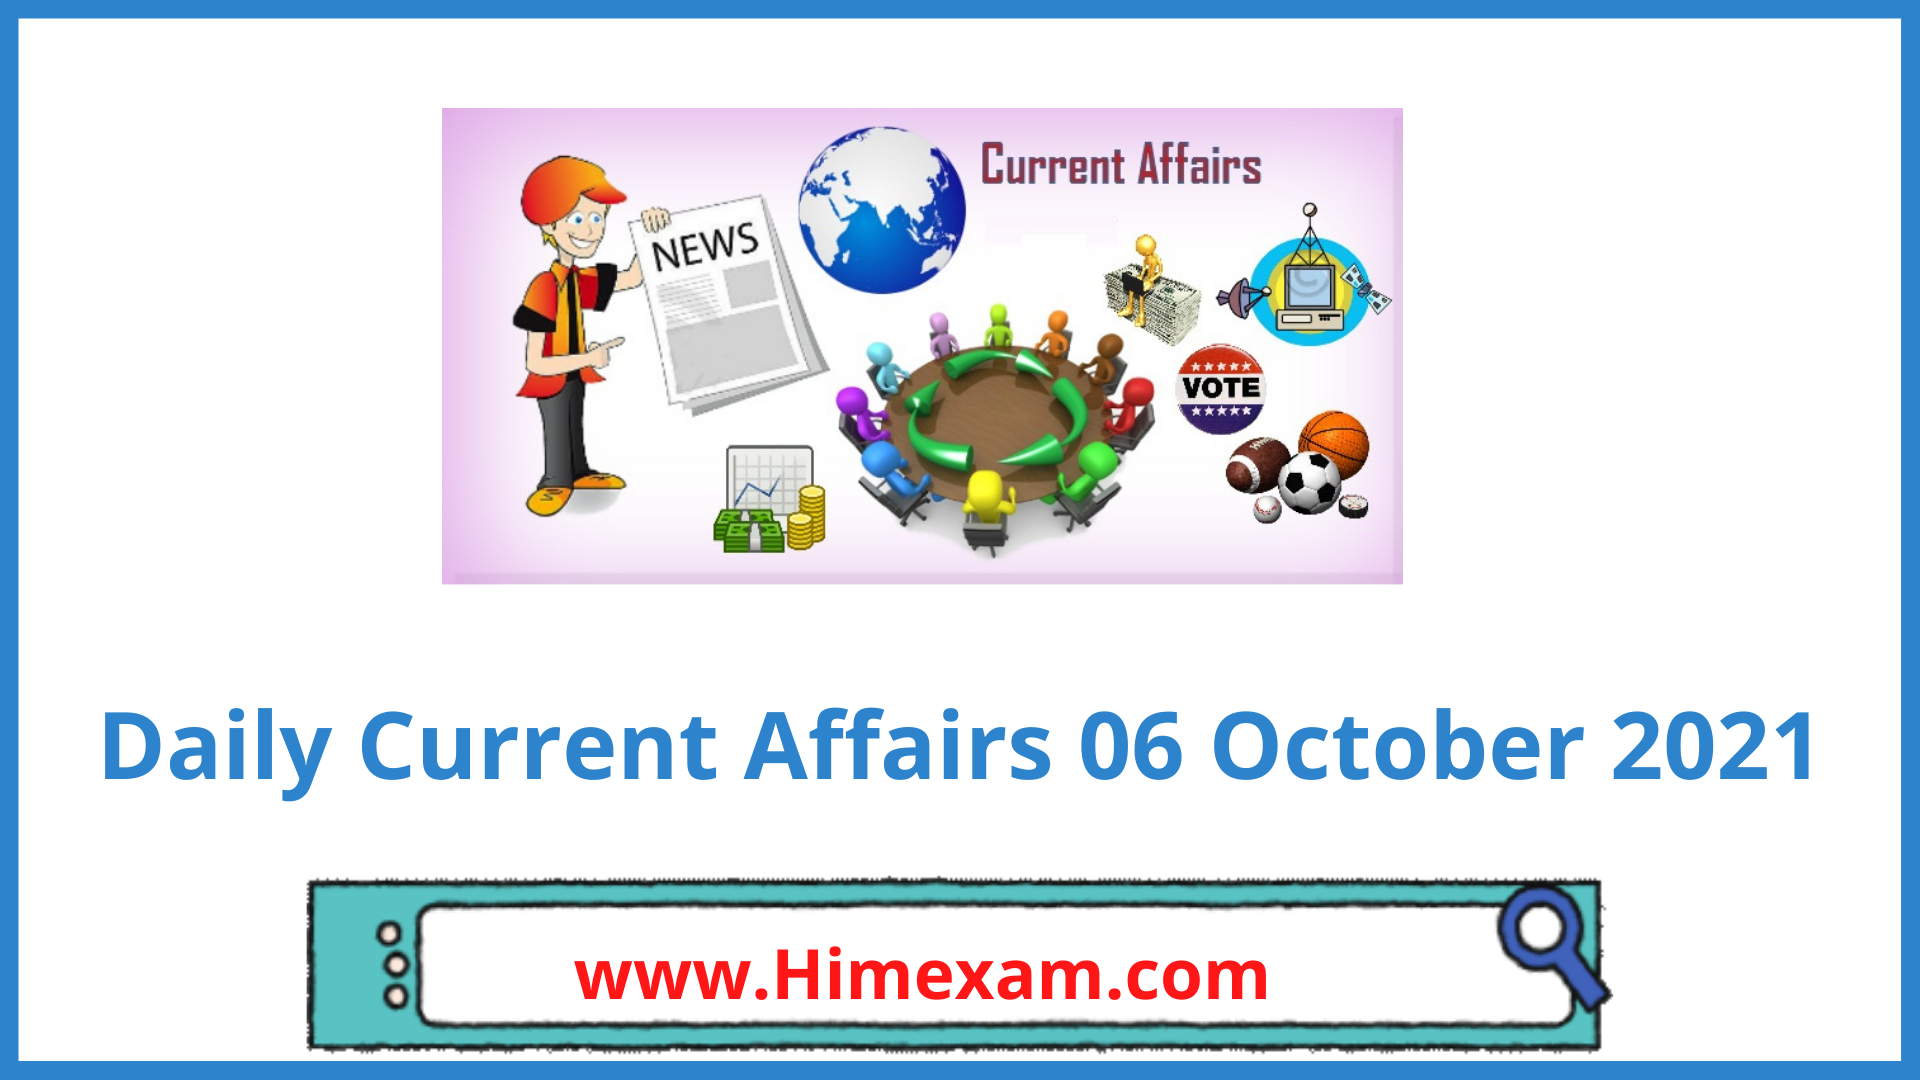 Daily Current Affairs 06 October 2021